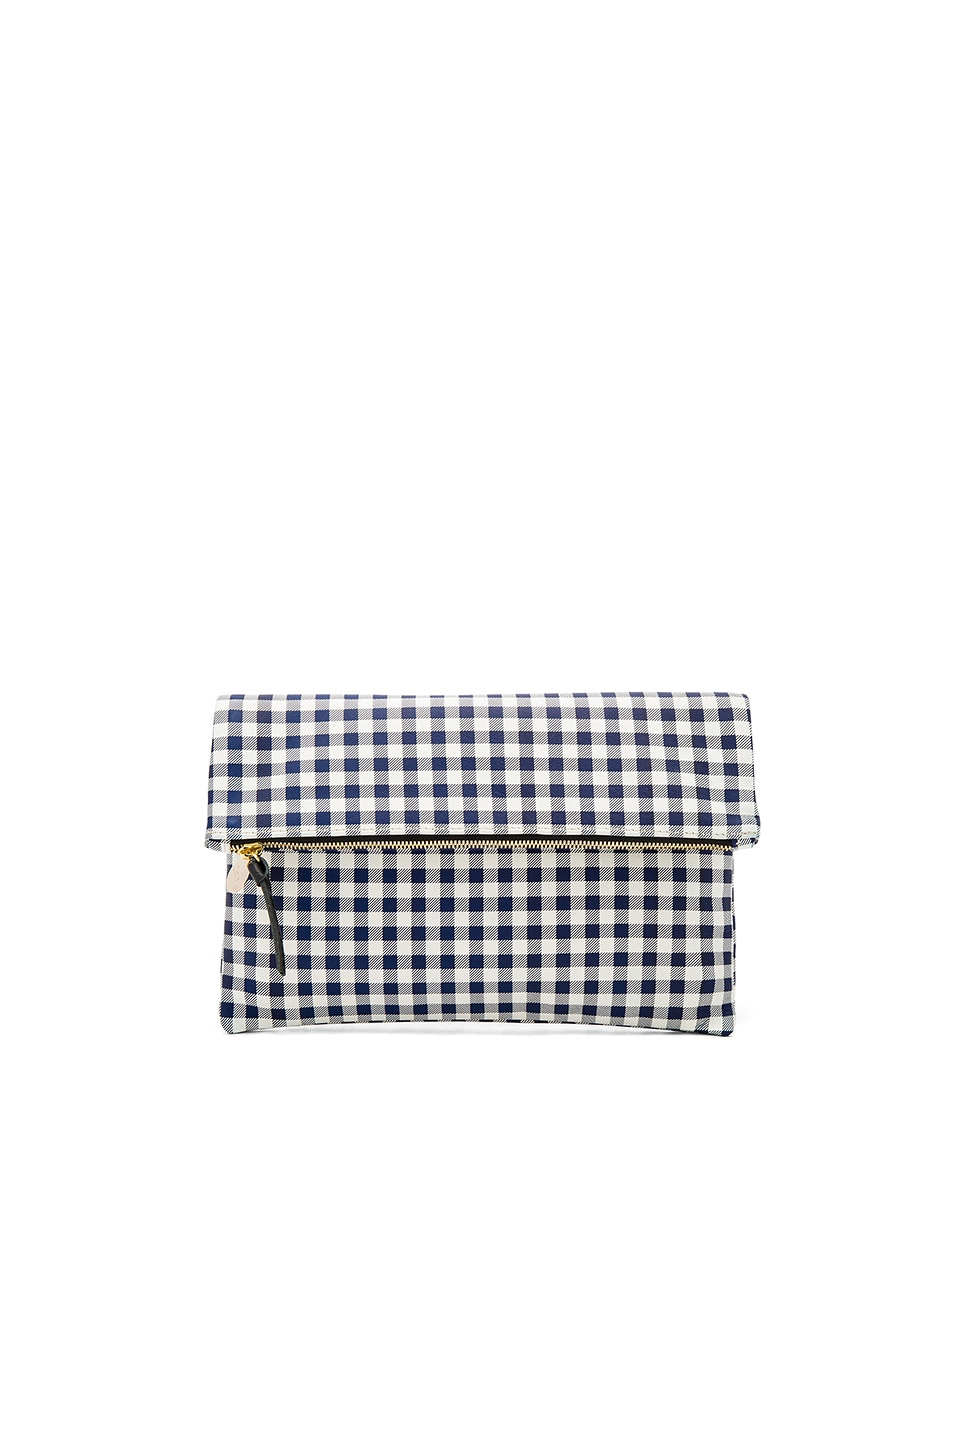 Foldover Clutch by Clare V.